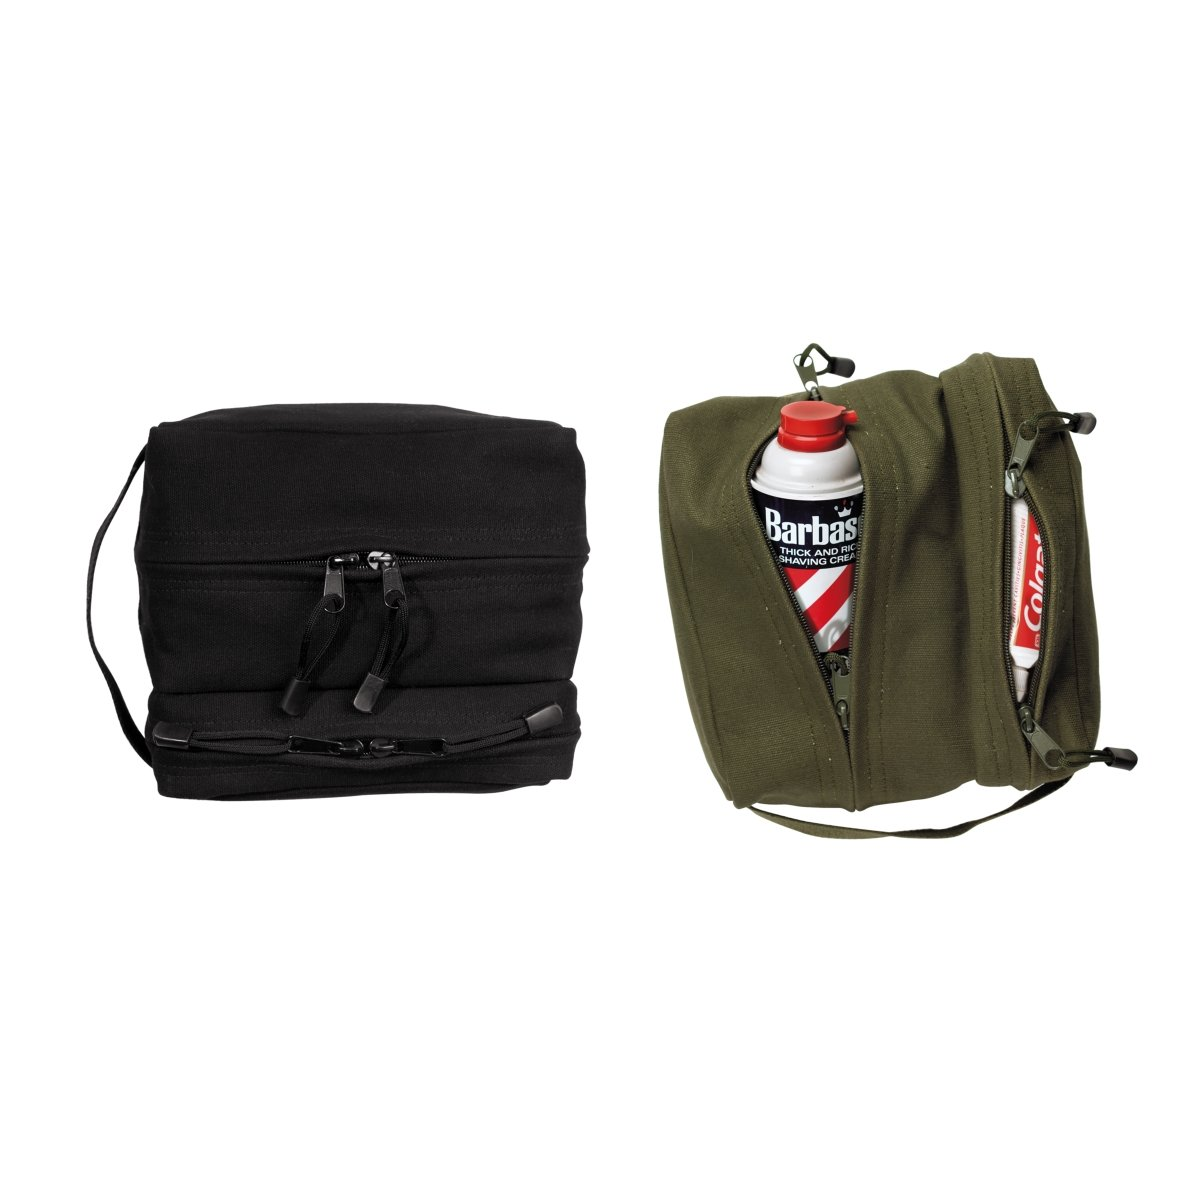 Amazon.com: Toiletry Bags - Bags & Cases